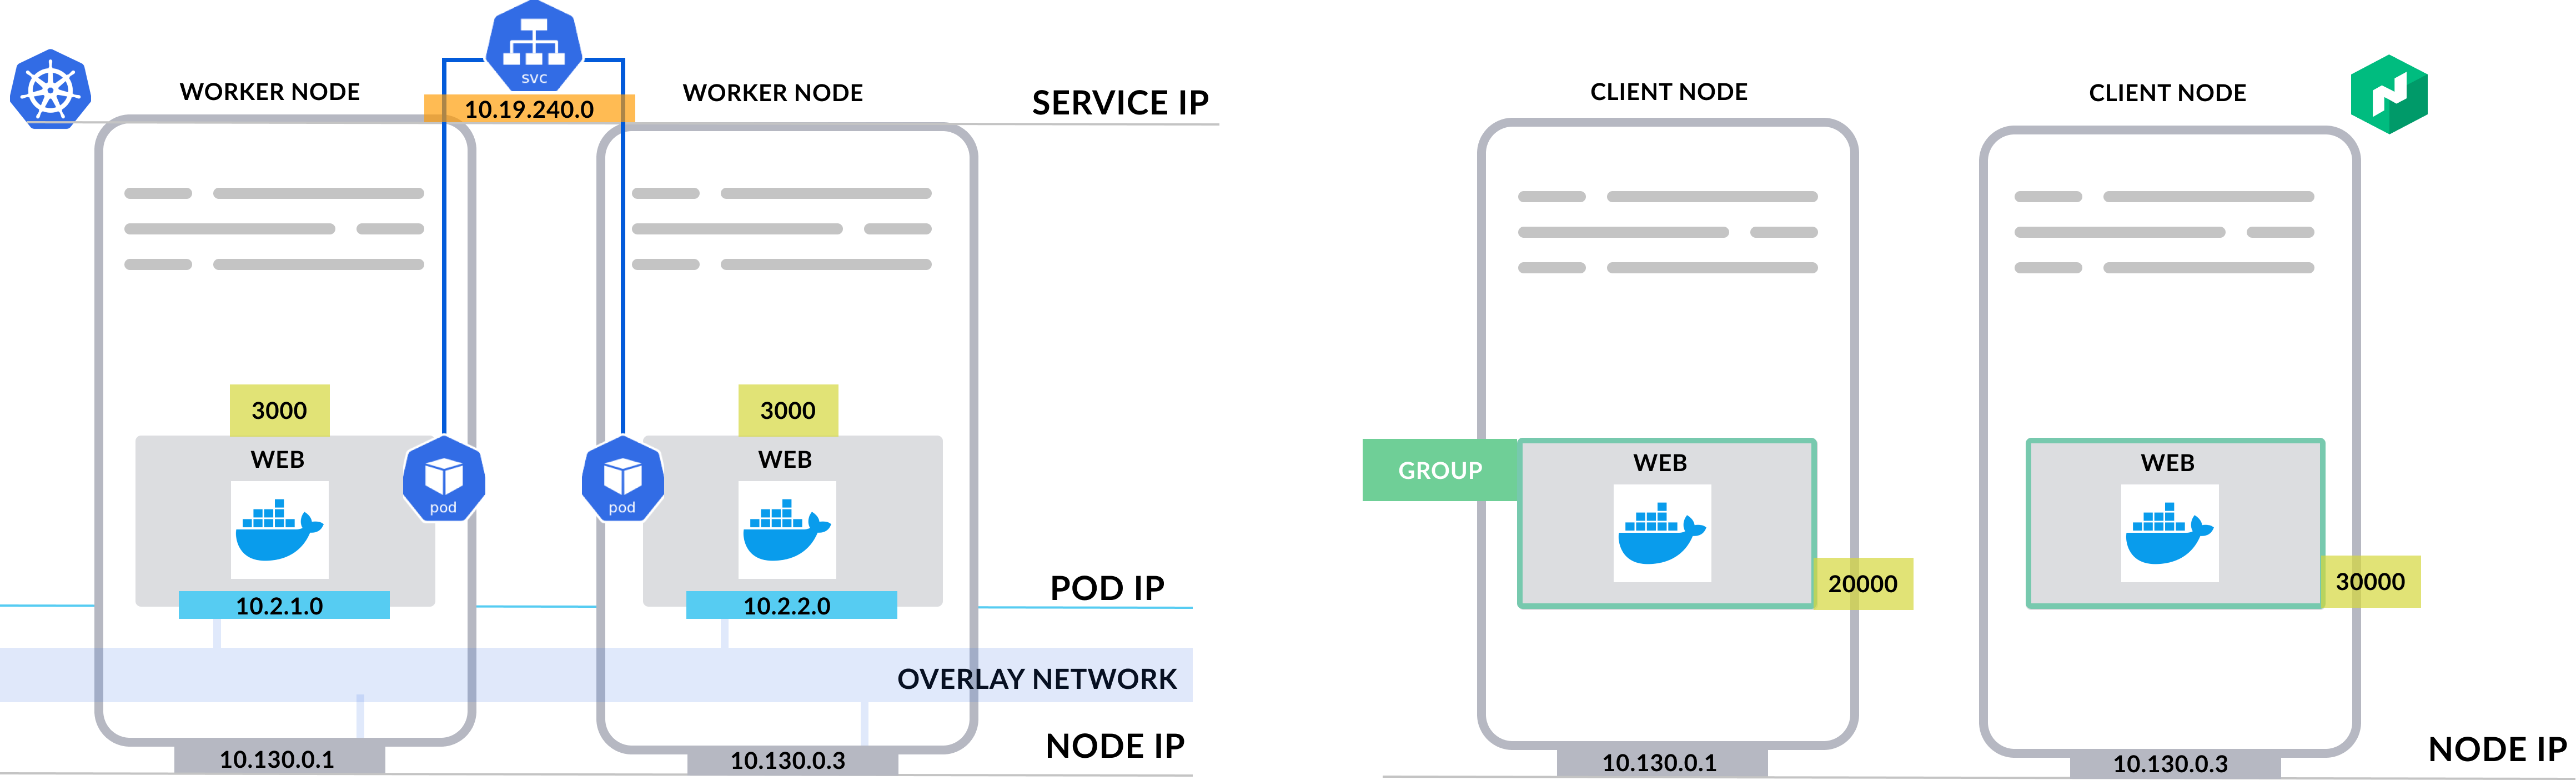 K8s networking vs Nomad networking